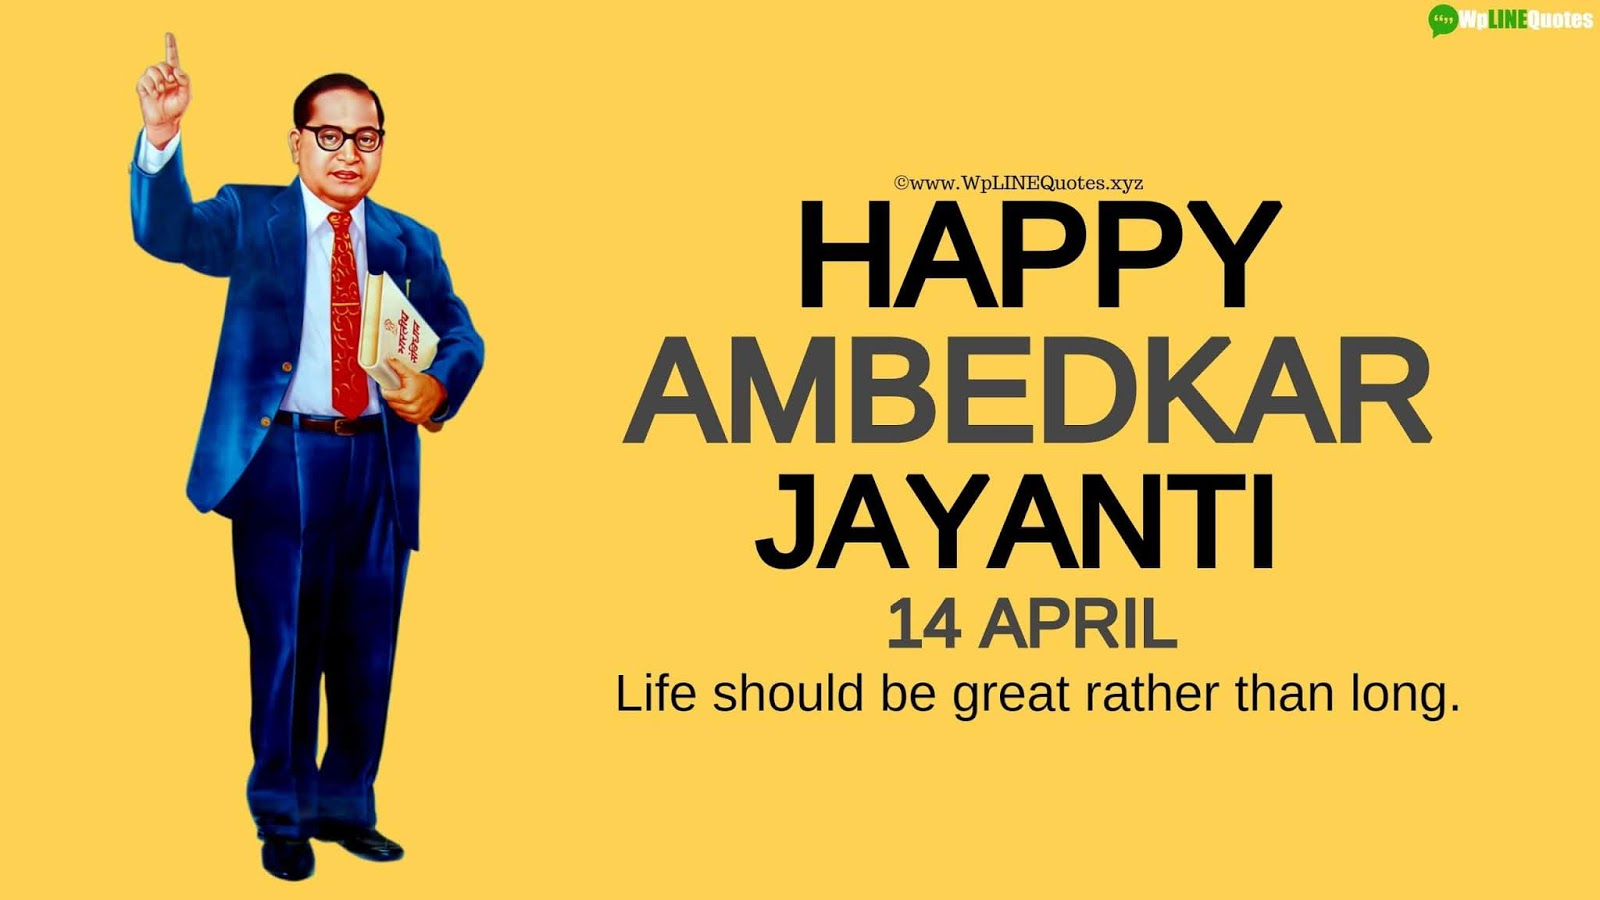 Ambedkar Jayanti Quotes, Wishes, Message, Greetings, SMS, Speech, History, Images, Pictures, Photos, Wallpaper